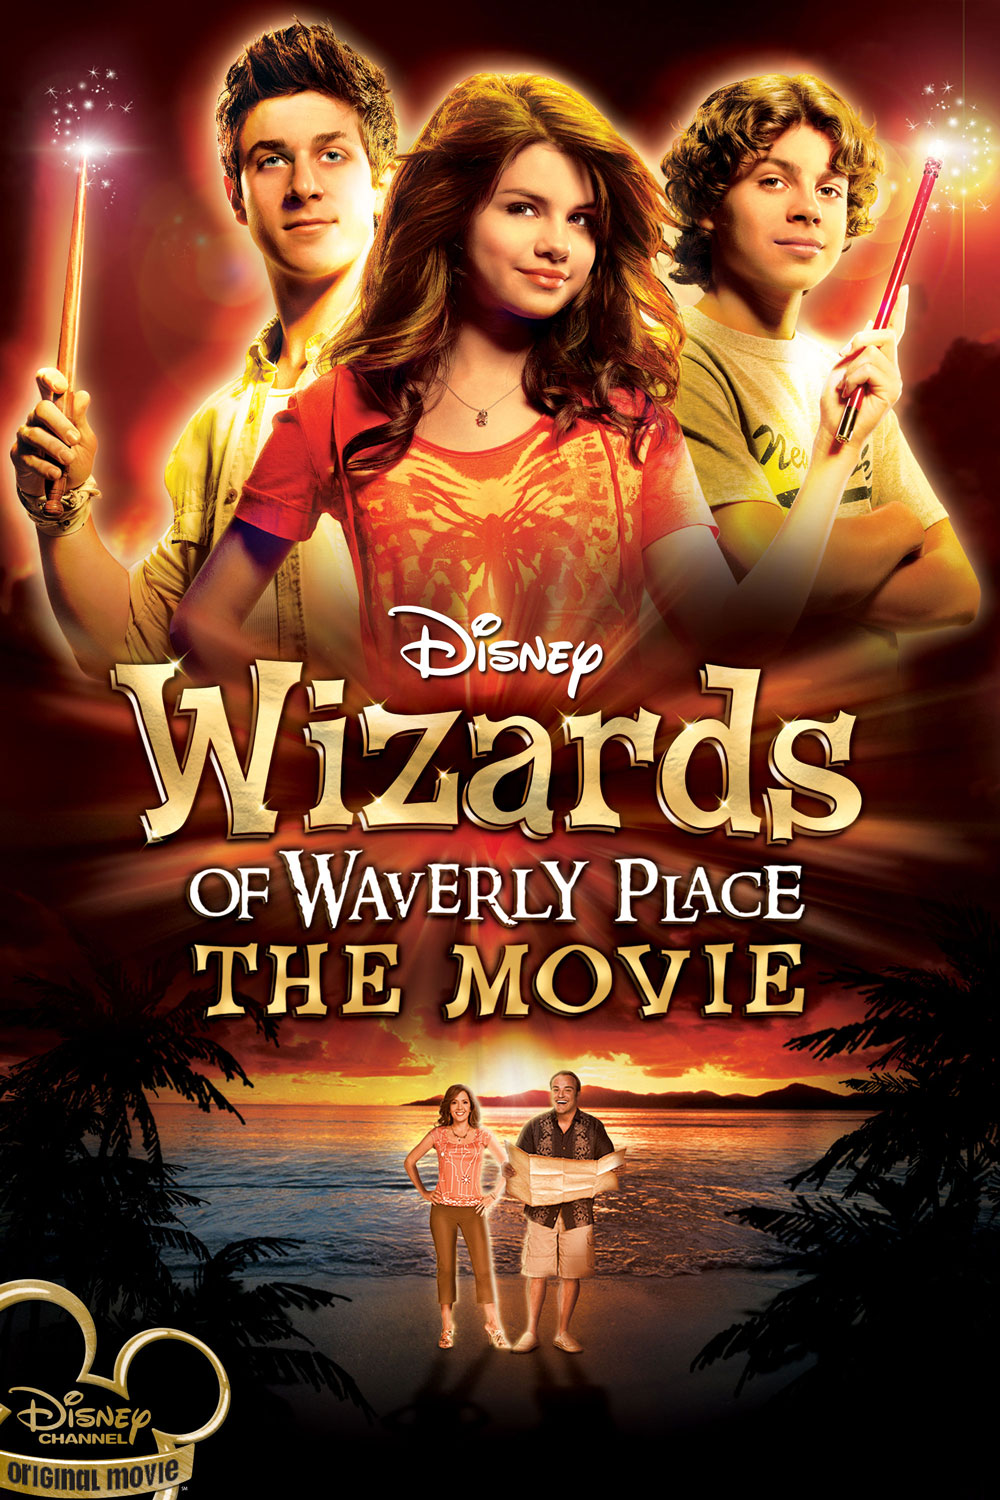 Disney Wizards of Waverly Place: The Movie movie poster